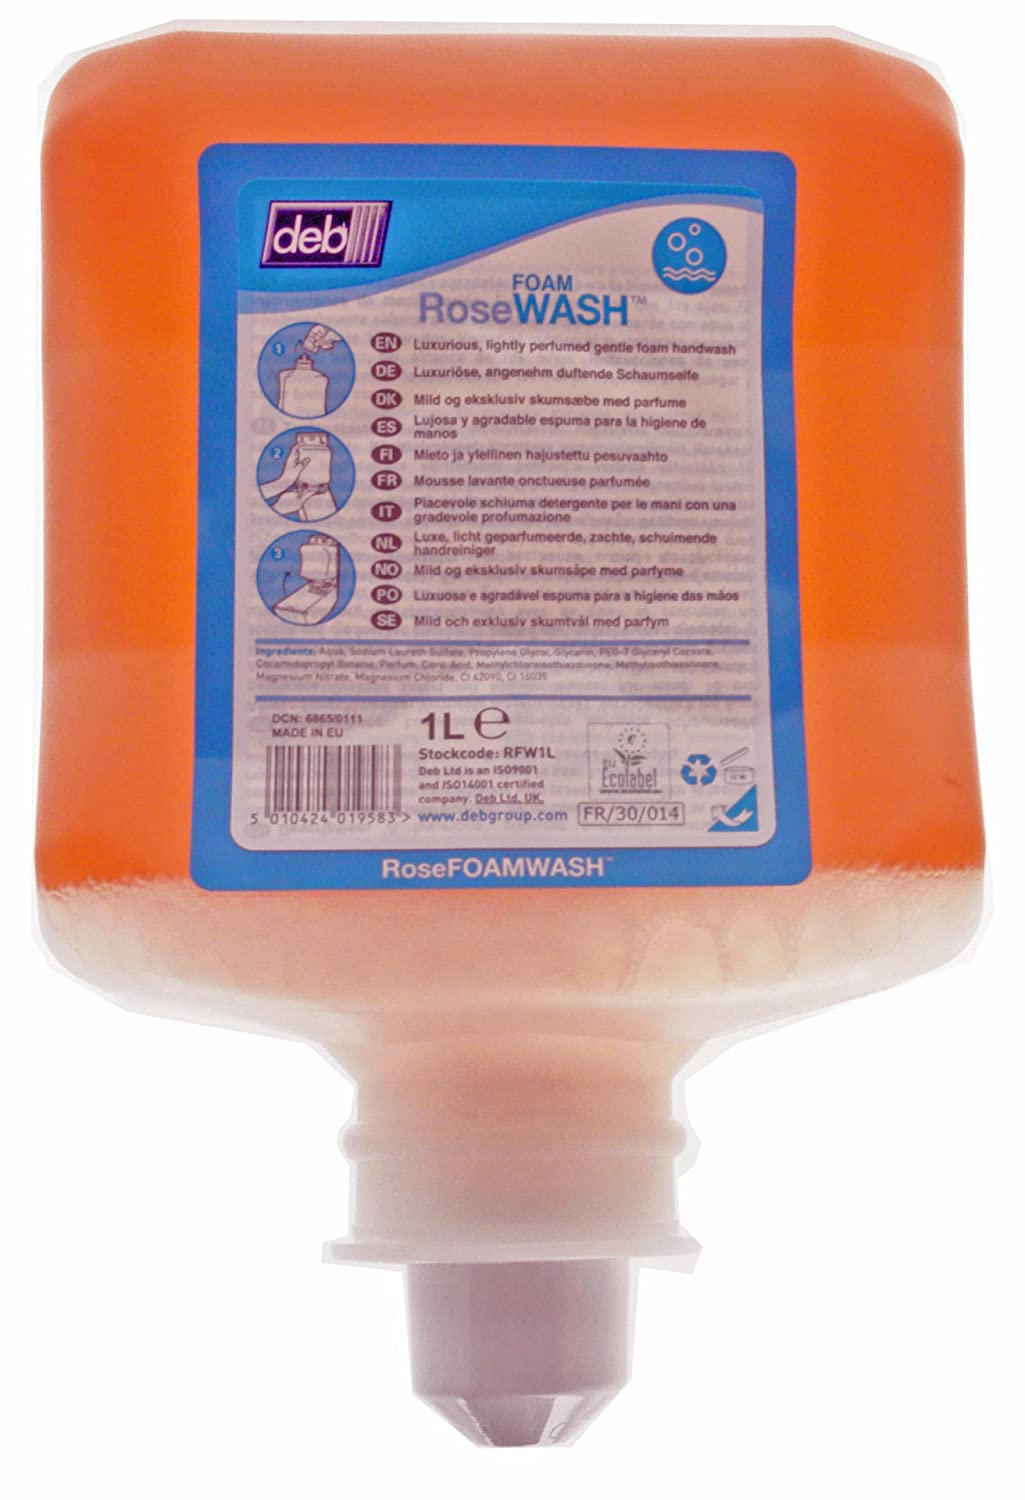 Deb RFW1L 1L Cartridge Rose Foam Hand Wash Deb Group Ltd.